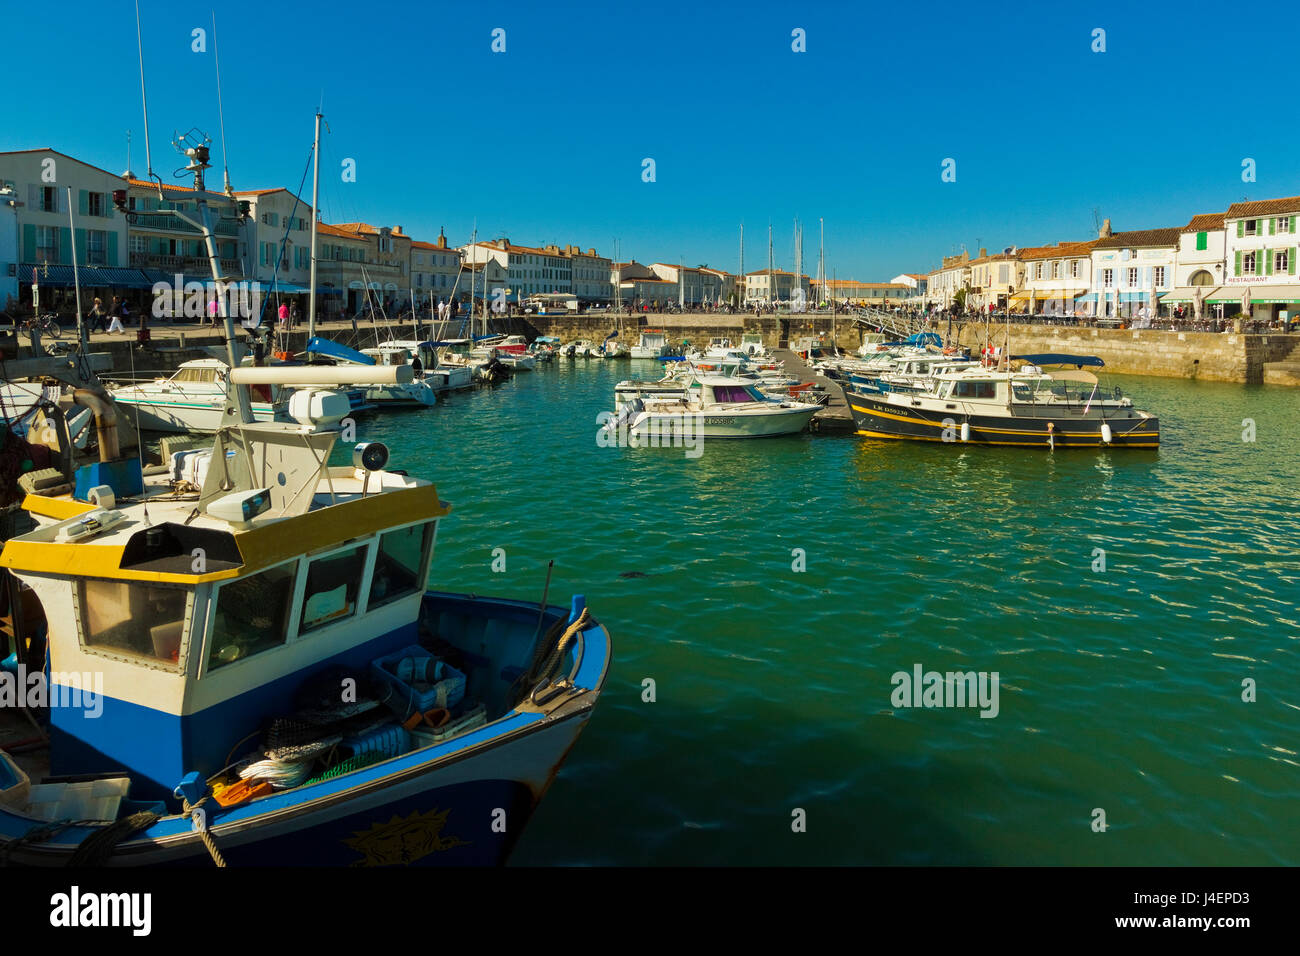 Fishing boats and yachts in the quays at this north coast town, Saint Martin de Re, Ile de Re, Charente-Maritime, - Stock Image